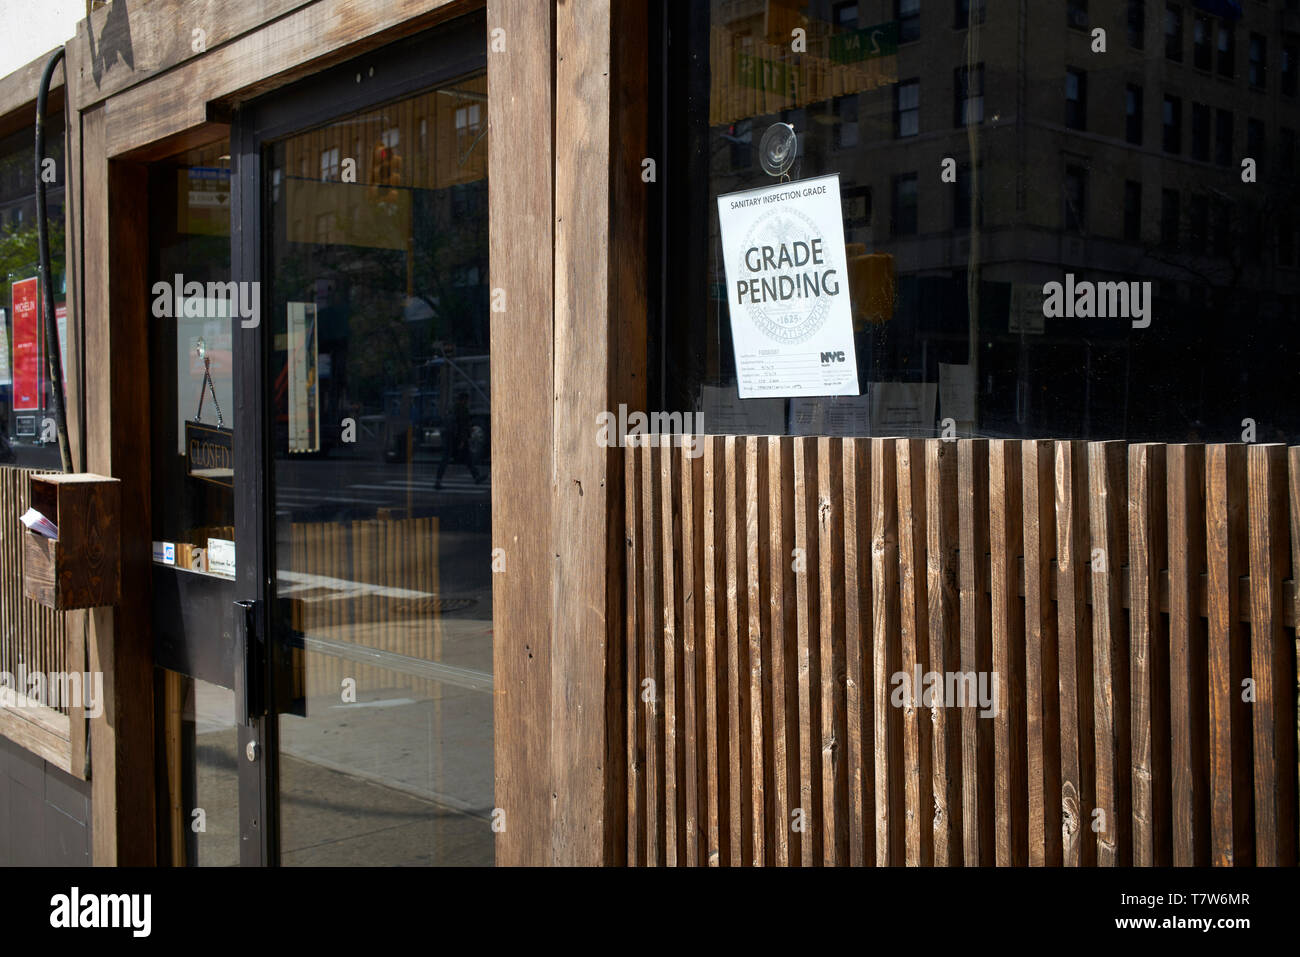 Health inspection Grade Pending sign displayed at a New York City restaurant entrance - Stock Image